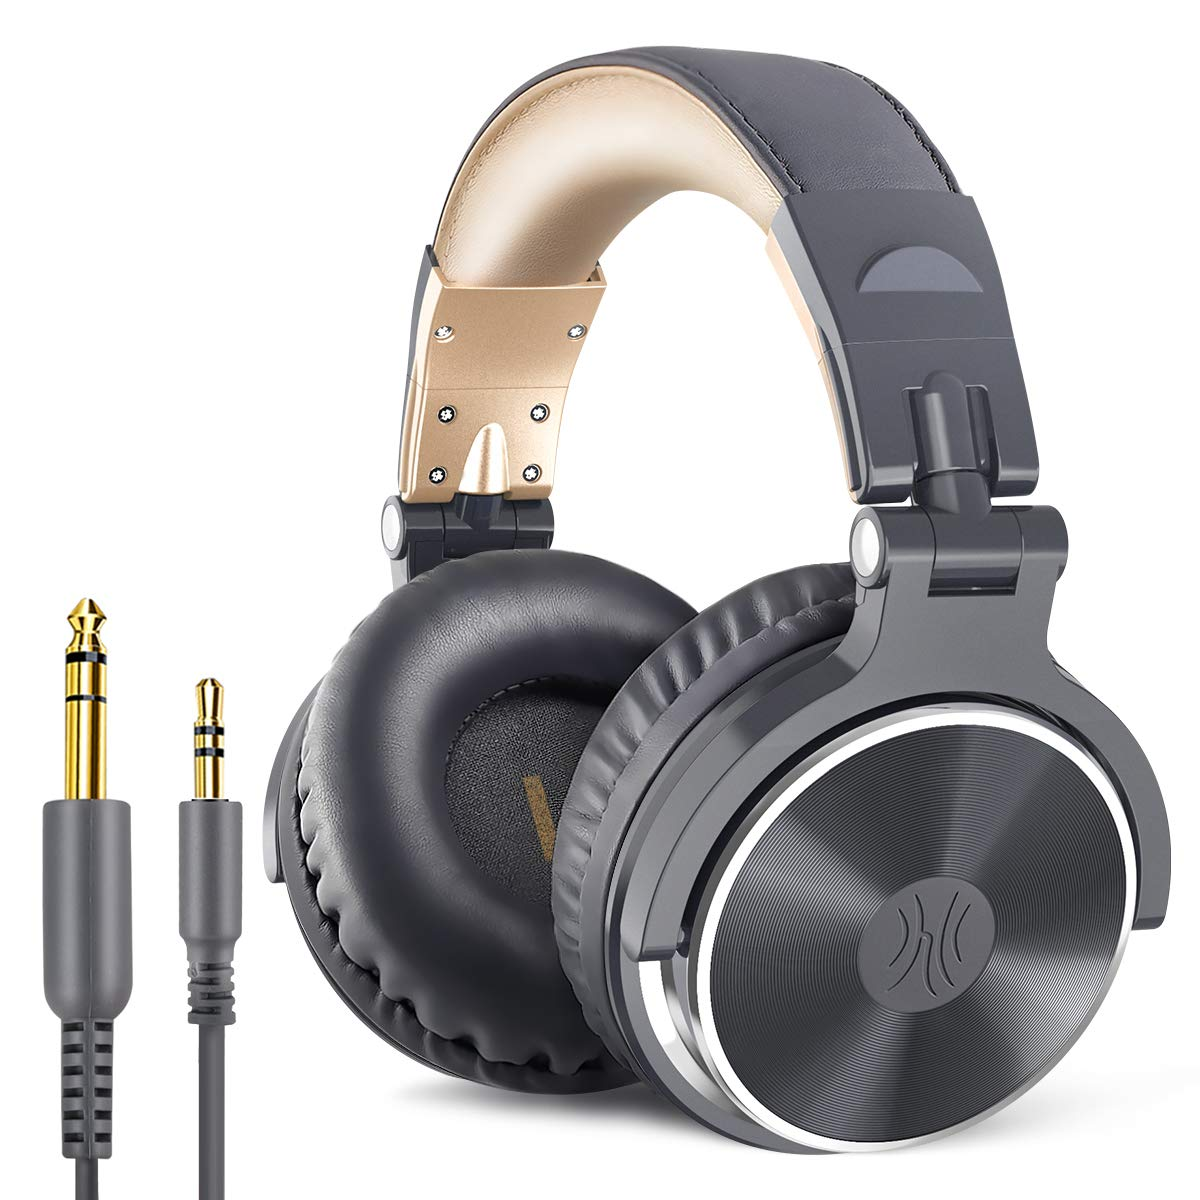 OneOdio Over Ear Headphone Studio Wired Bass Headsets with 50mm Driver, Foldable Lightweight Headphones with Shareport and Mic for DJ Recording Monitoring Mixing Podcast Guitar PC TV (Golden Grey)